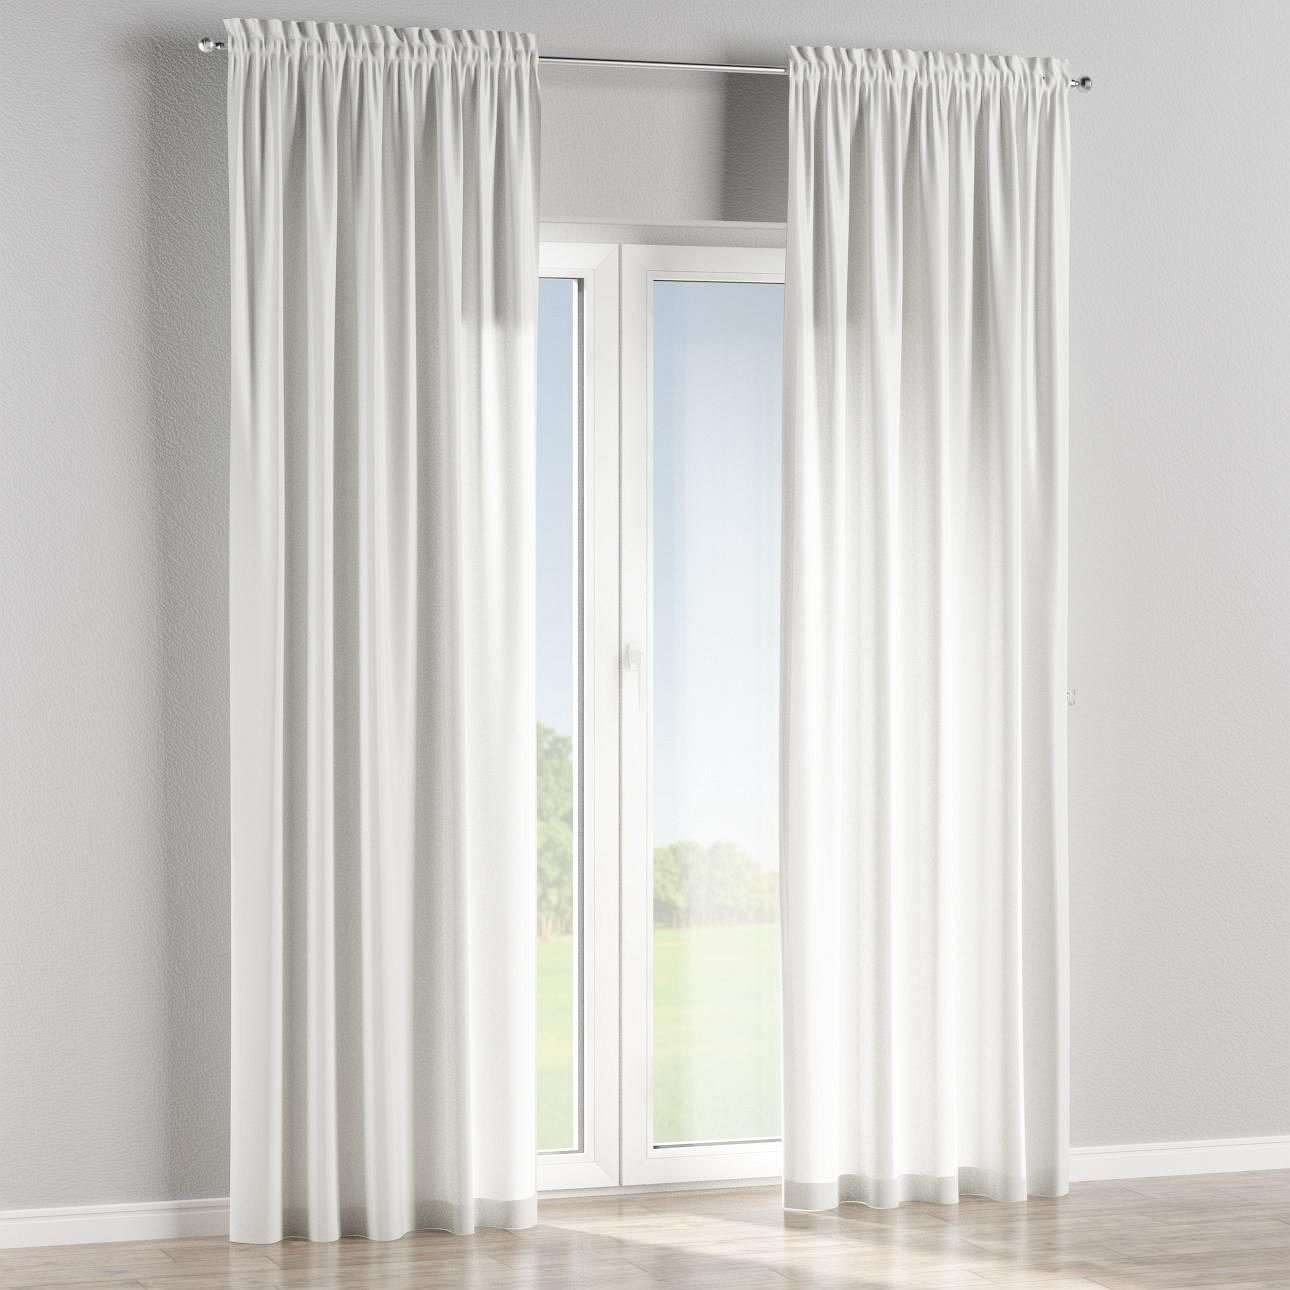 Slot and frill curtains in collection Norge, fabric: 150-03